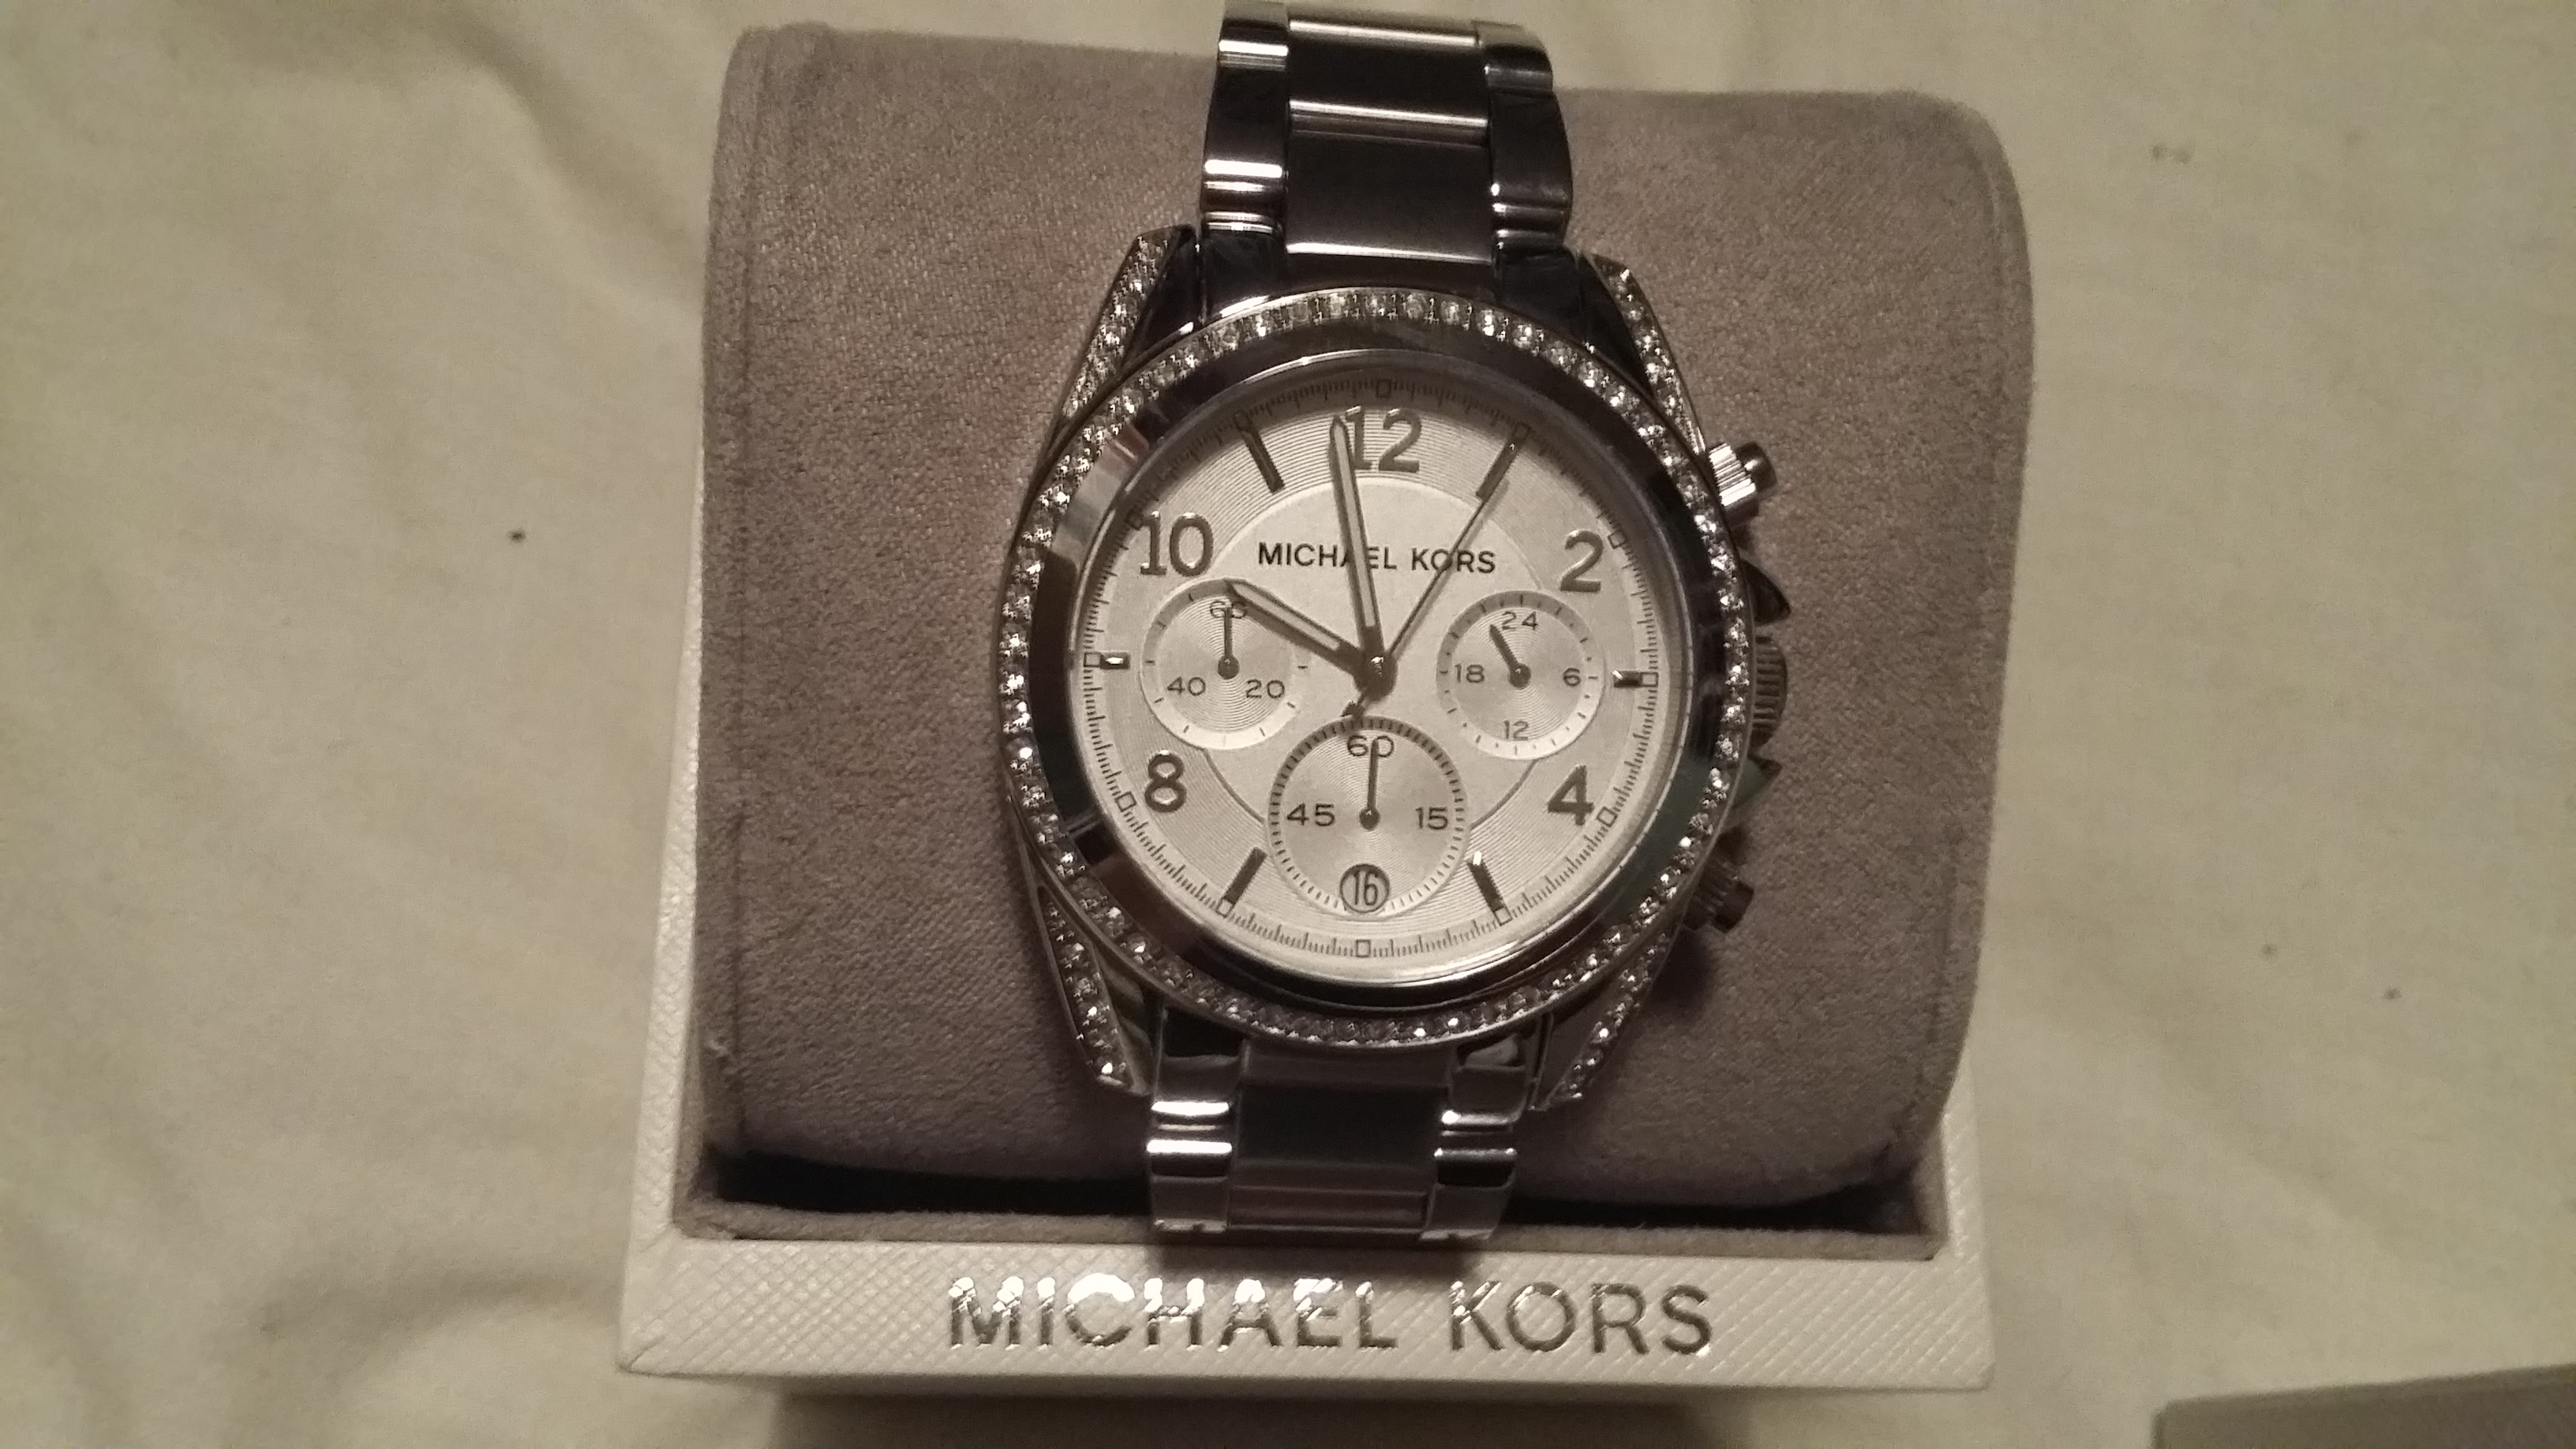 750ee6e19 I bought this michael kors watch for my girlfriend as it was her 31st  birthday she absolutely adores it, it came in a stylish michael kors box,  ...